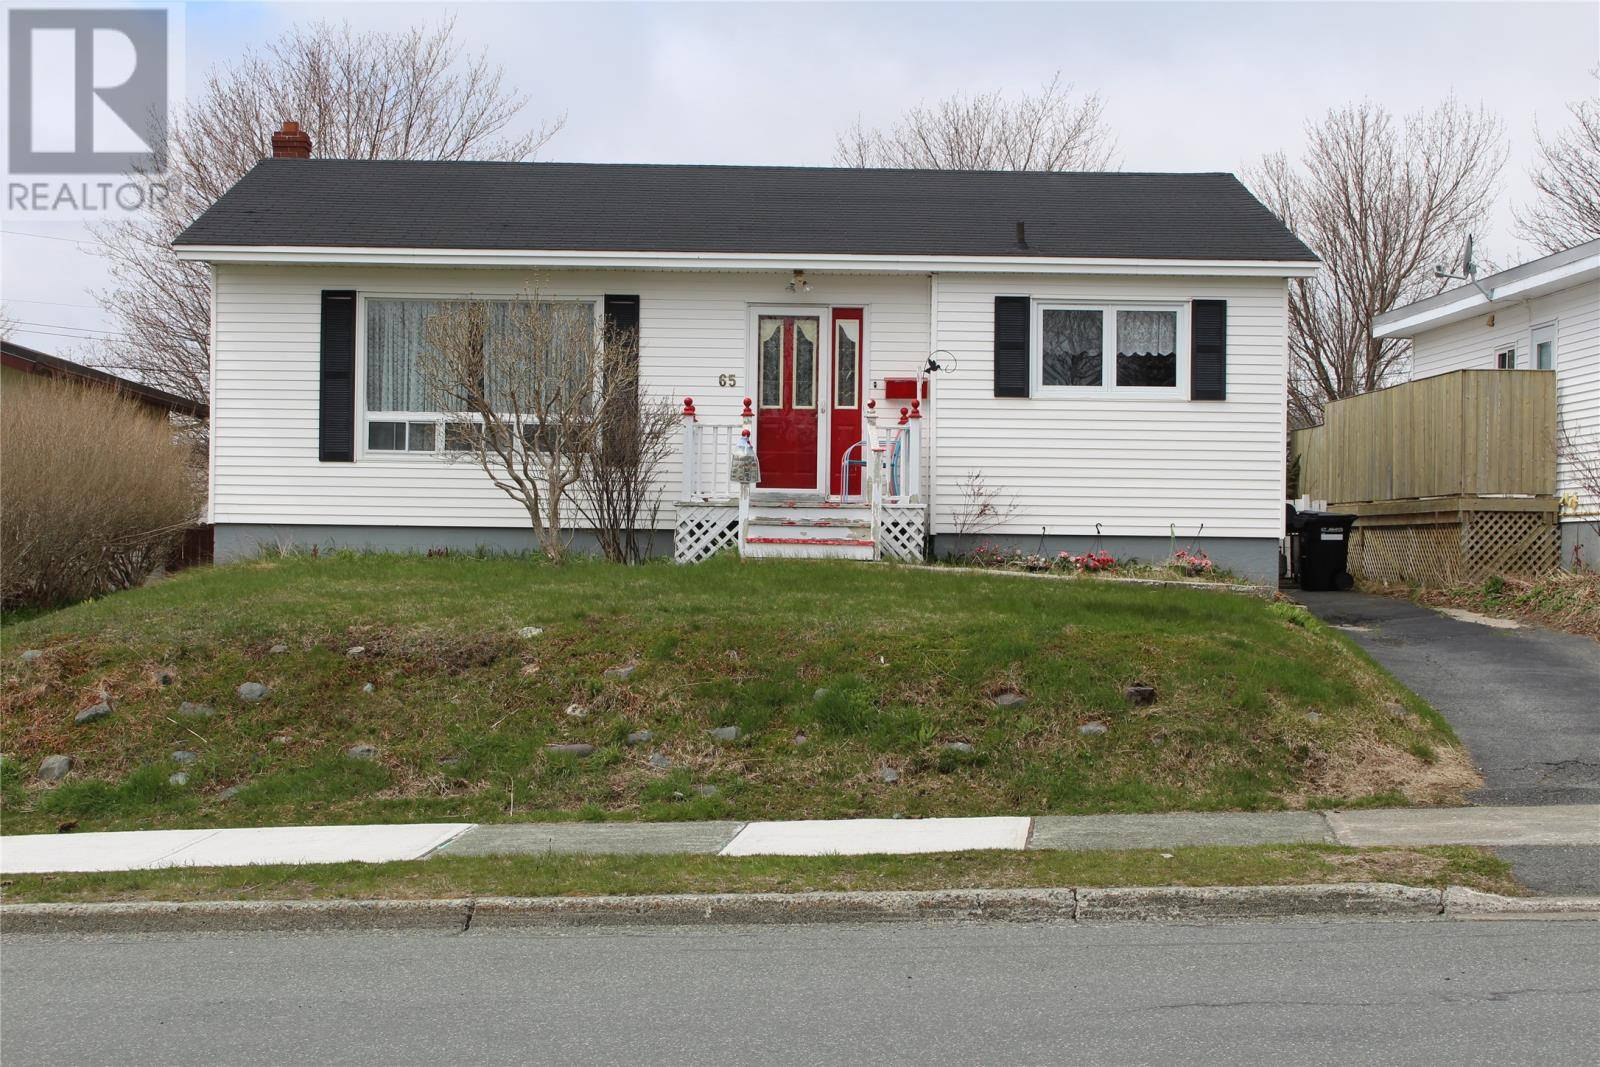 House for sale at 65 Ennis Ave St. John's Newfoundland - MLS: 1211294